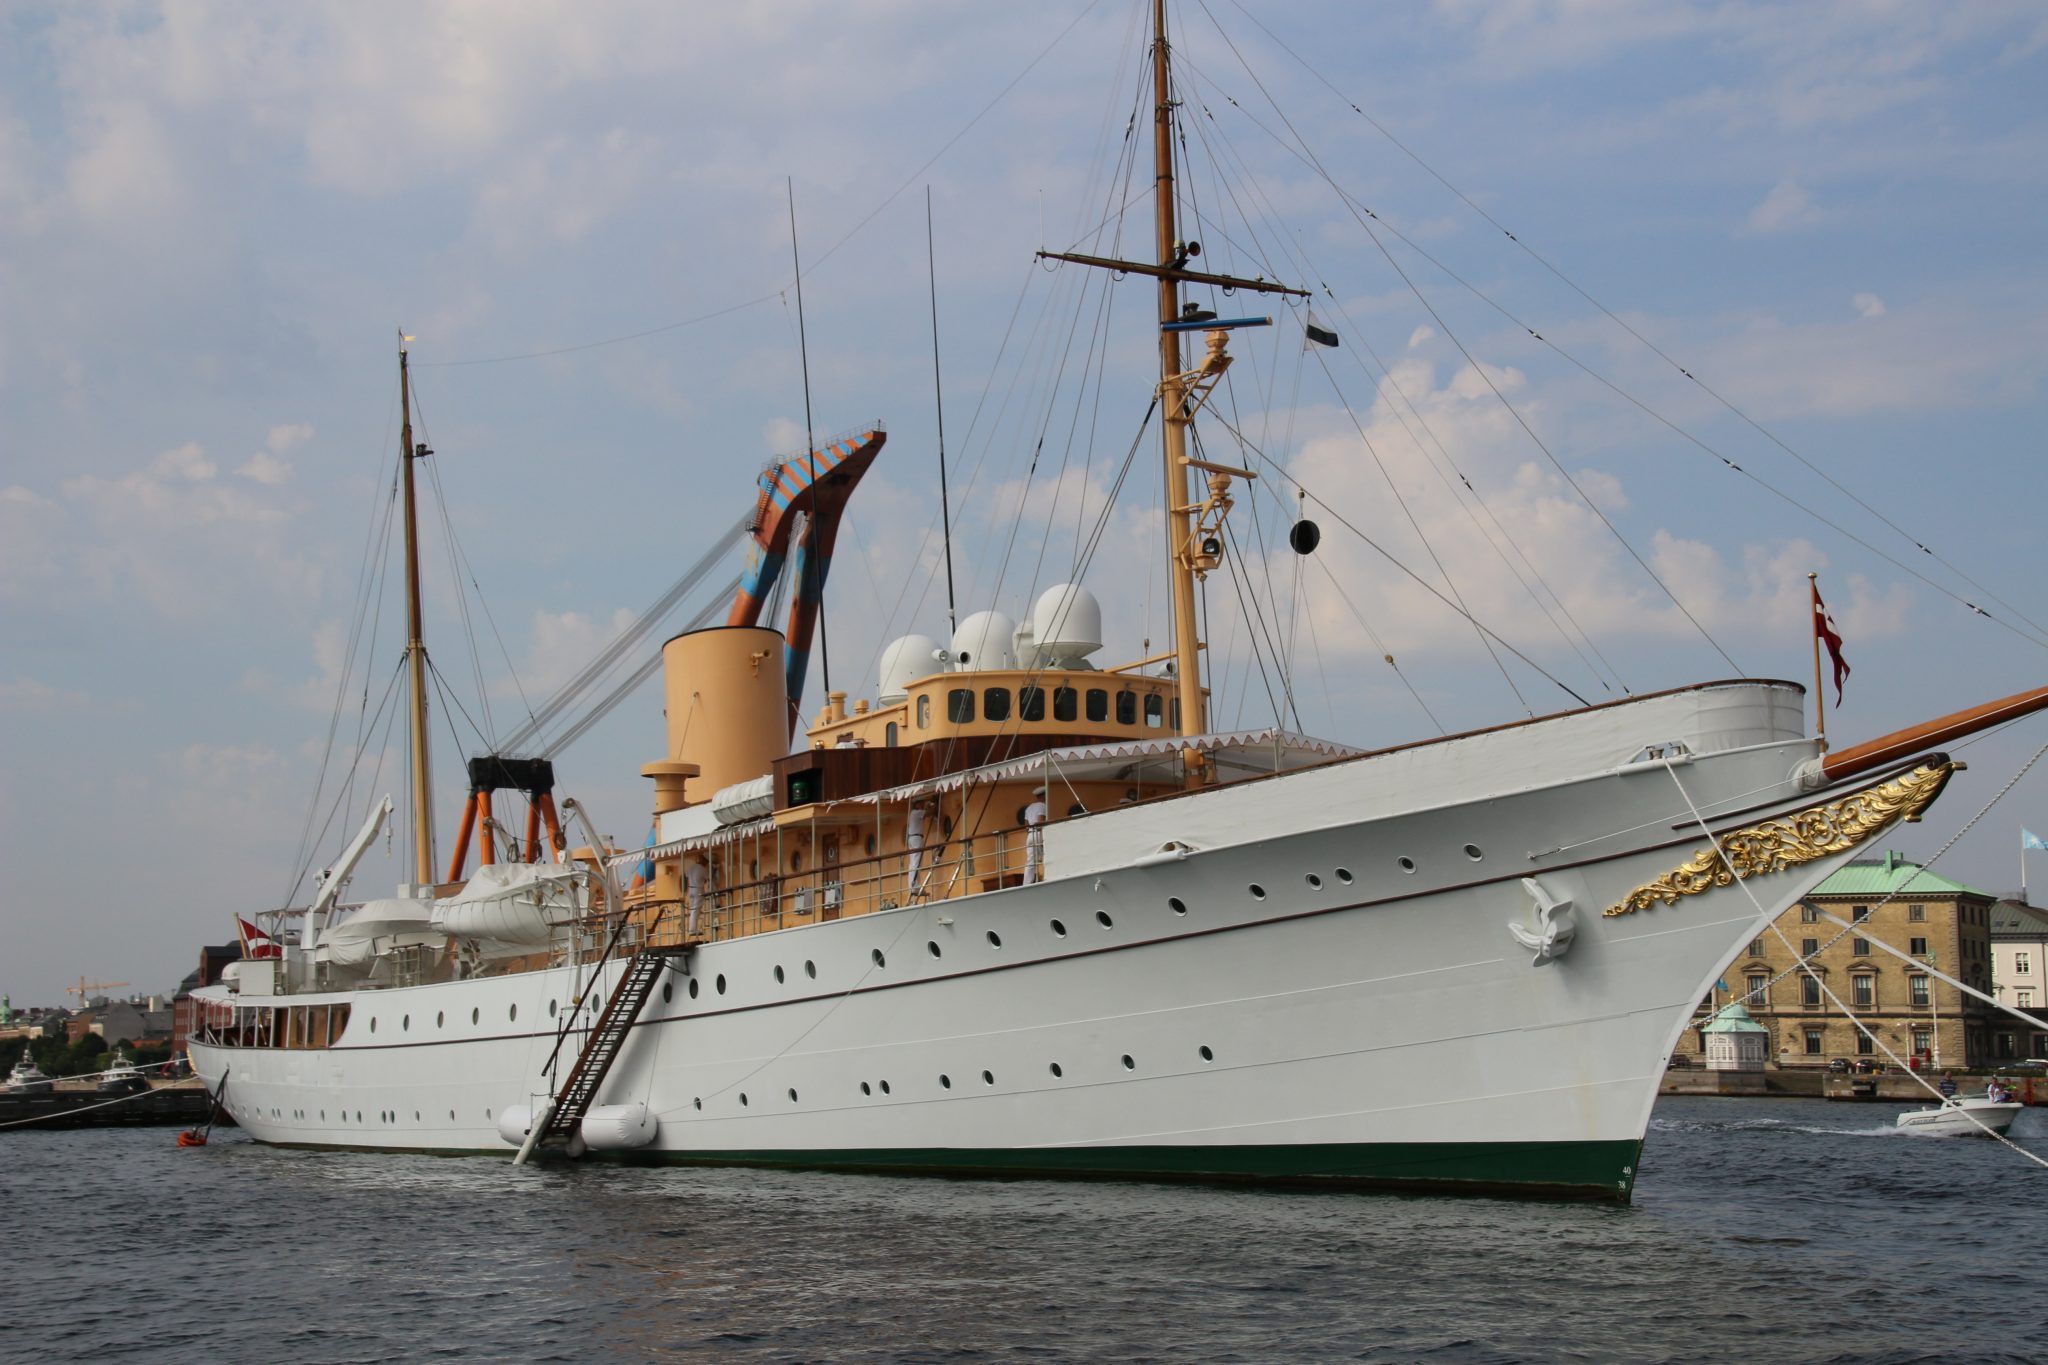 Danish Royal Yacht in Copenhagen